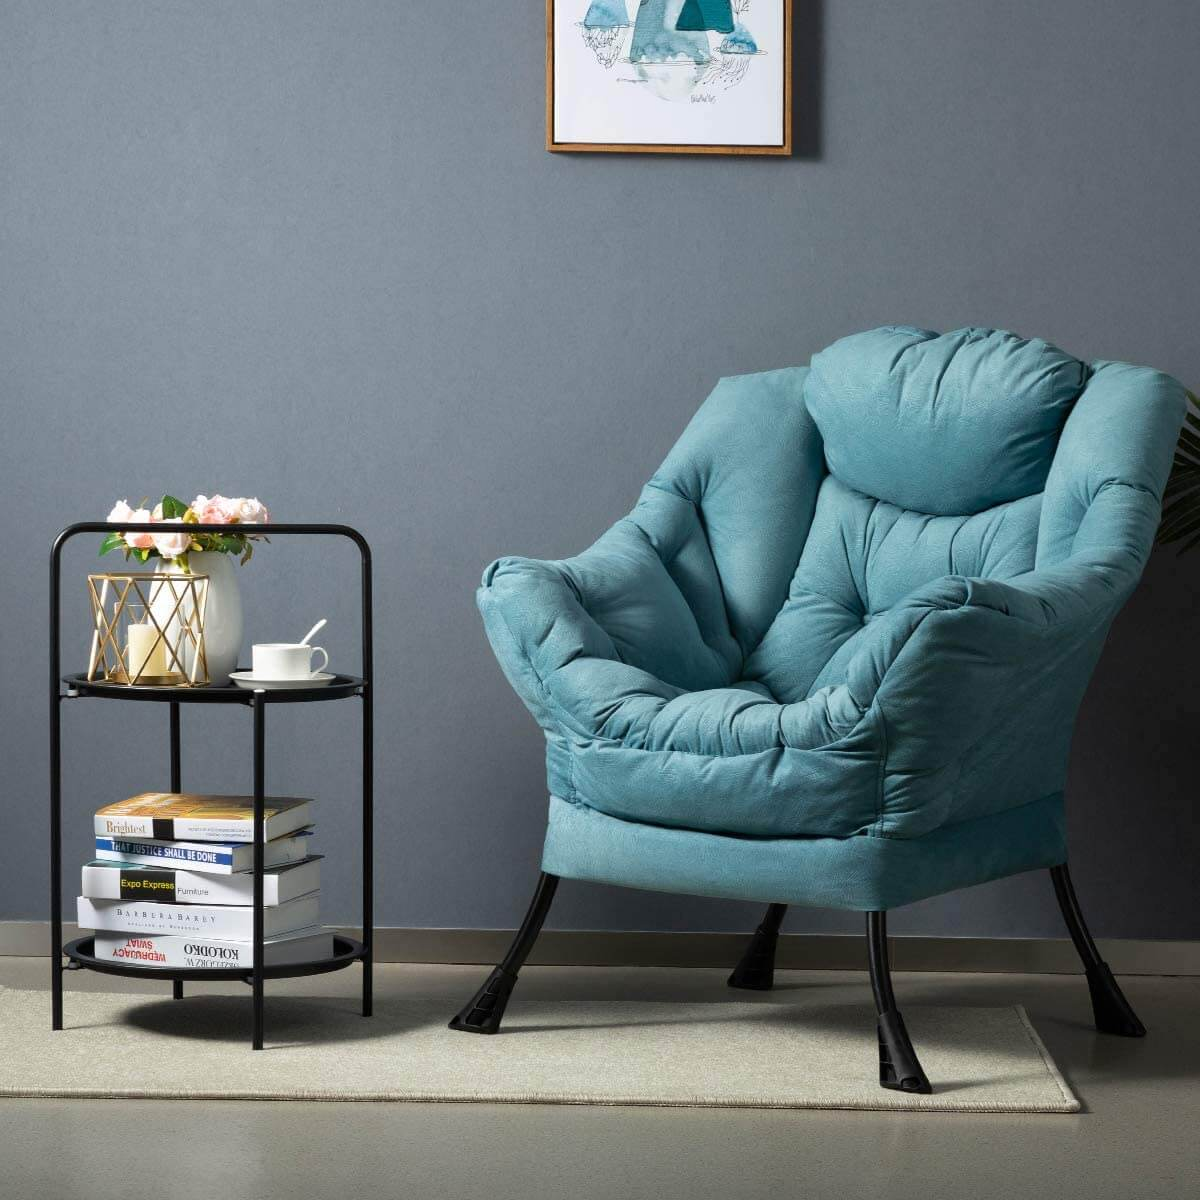 Sophisticated and Modern Accent Lazy Chair